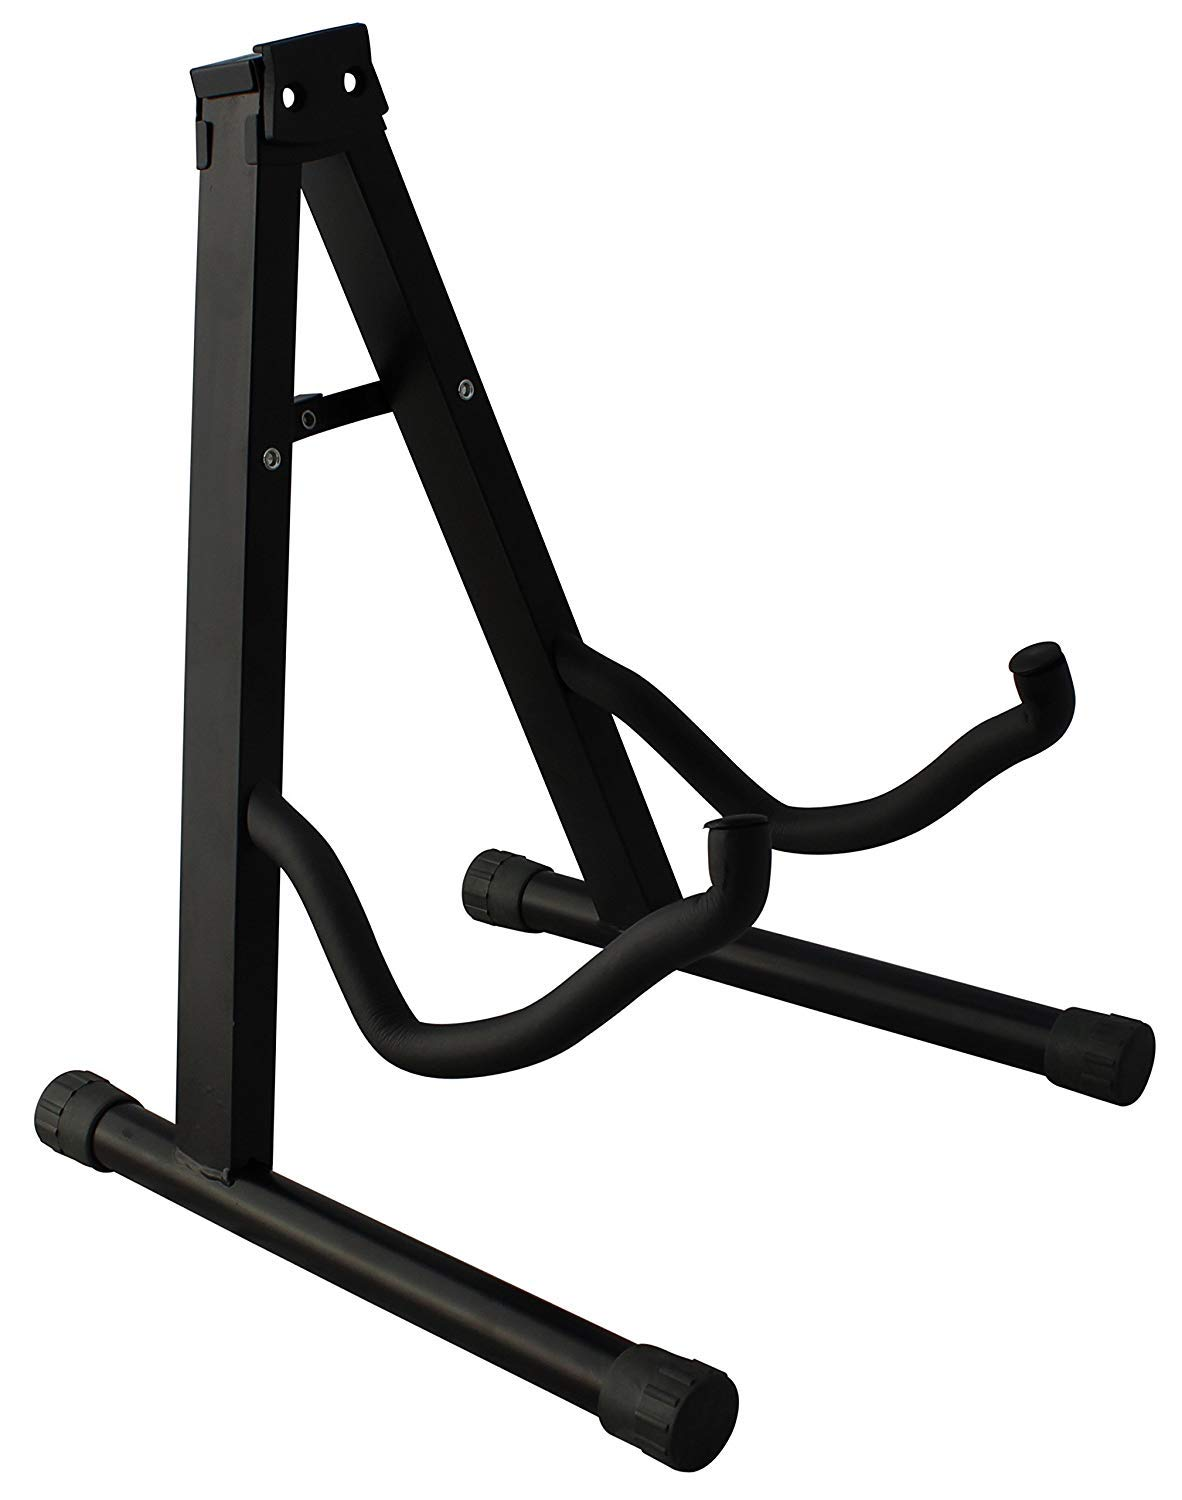 CAIHONG Guitar Stand Folding Universal A frame Stand for All Guitars Acoustic Classic Electric Bass Travel Guitar Stand - Black